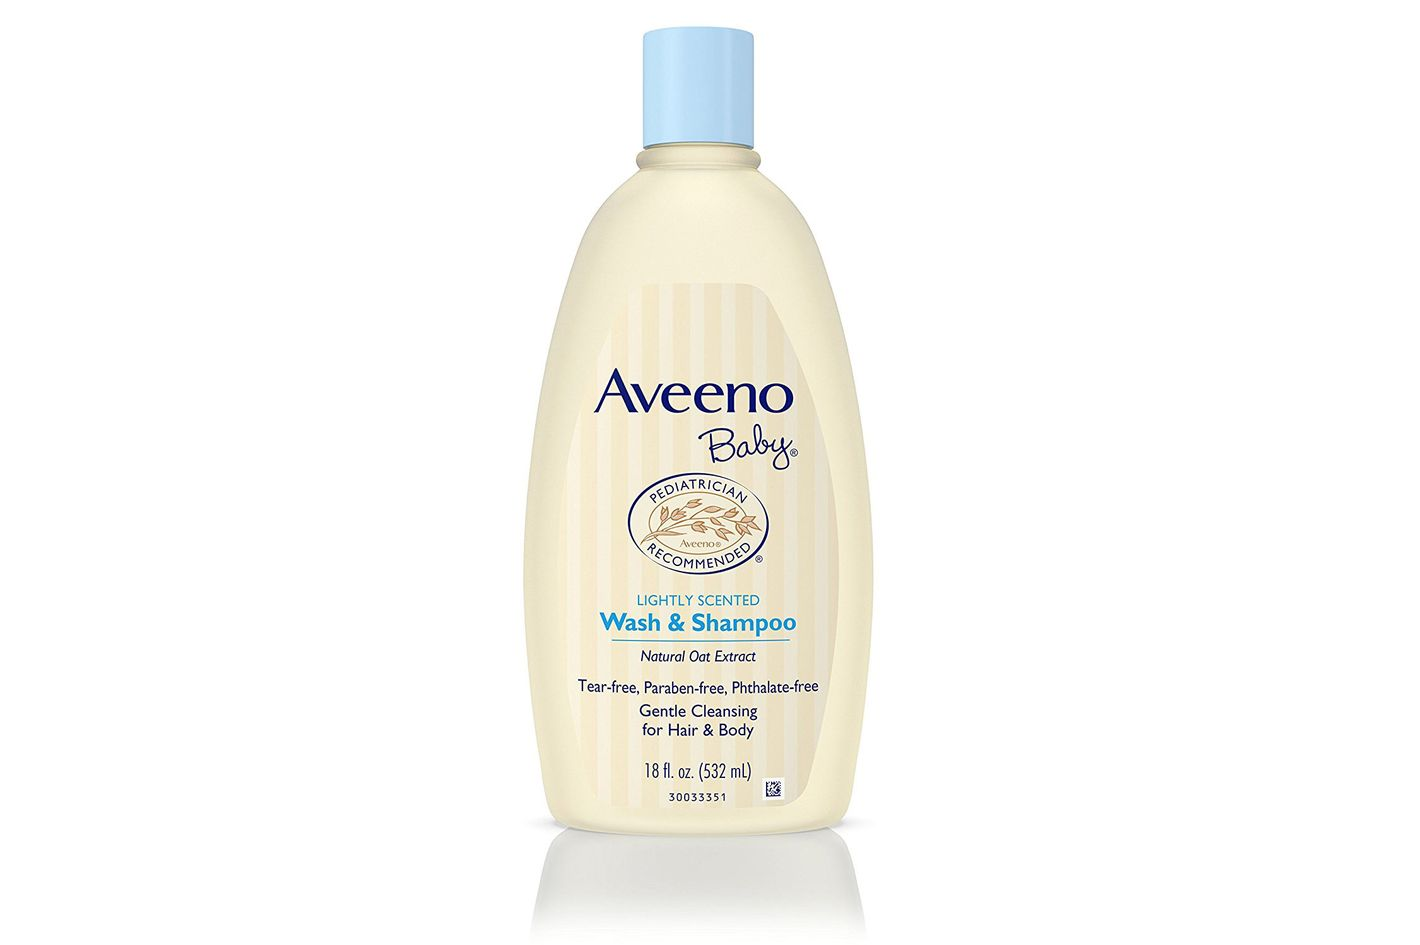 Aveeno Baby Wash & Shampoo for Hair & Body, Tear-Free